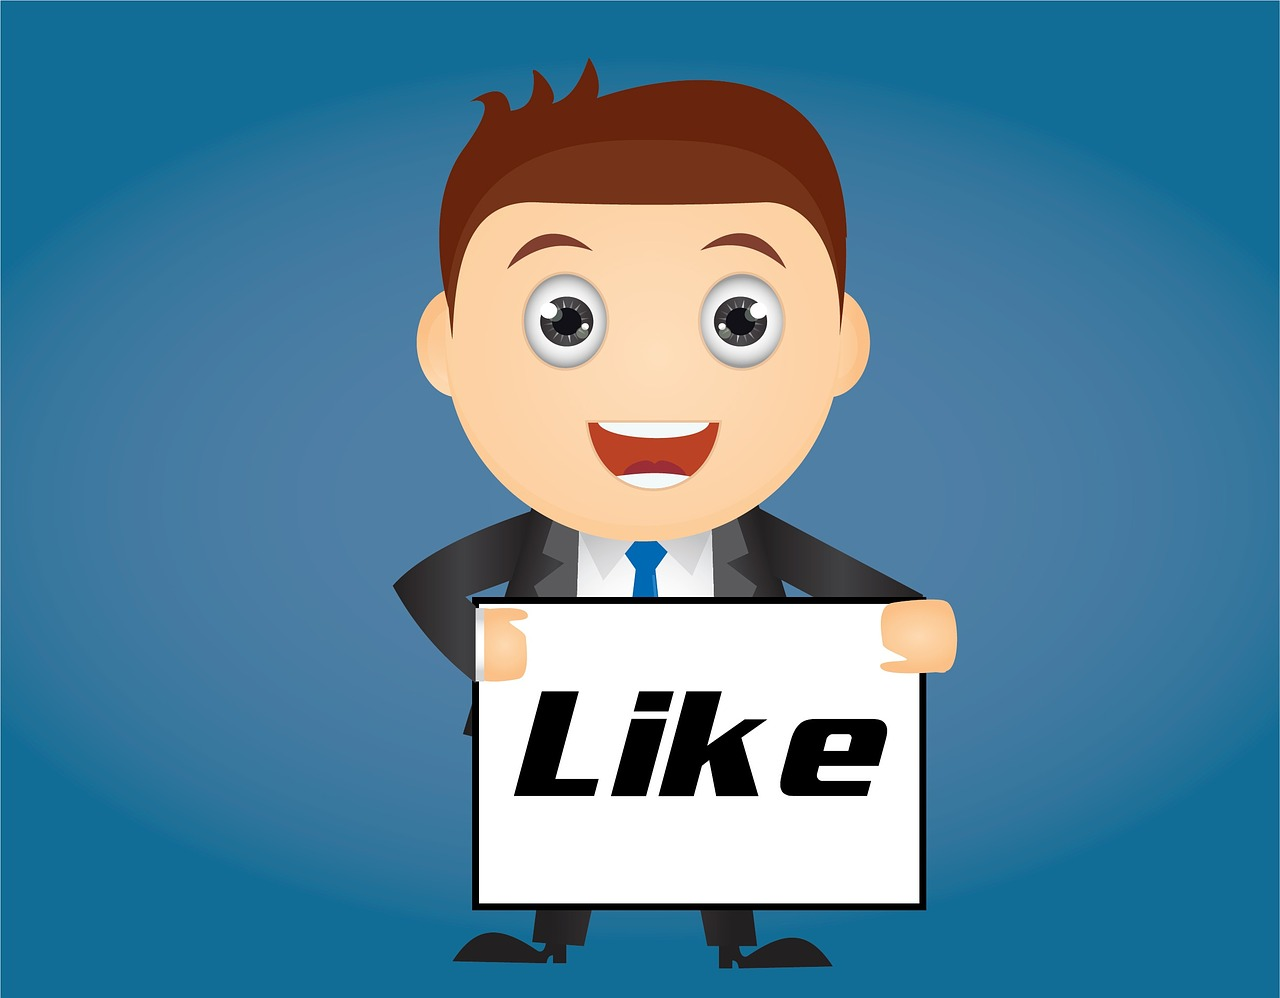 Social Media: Is Your Professionalism Good for Business?